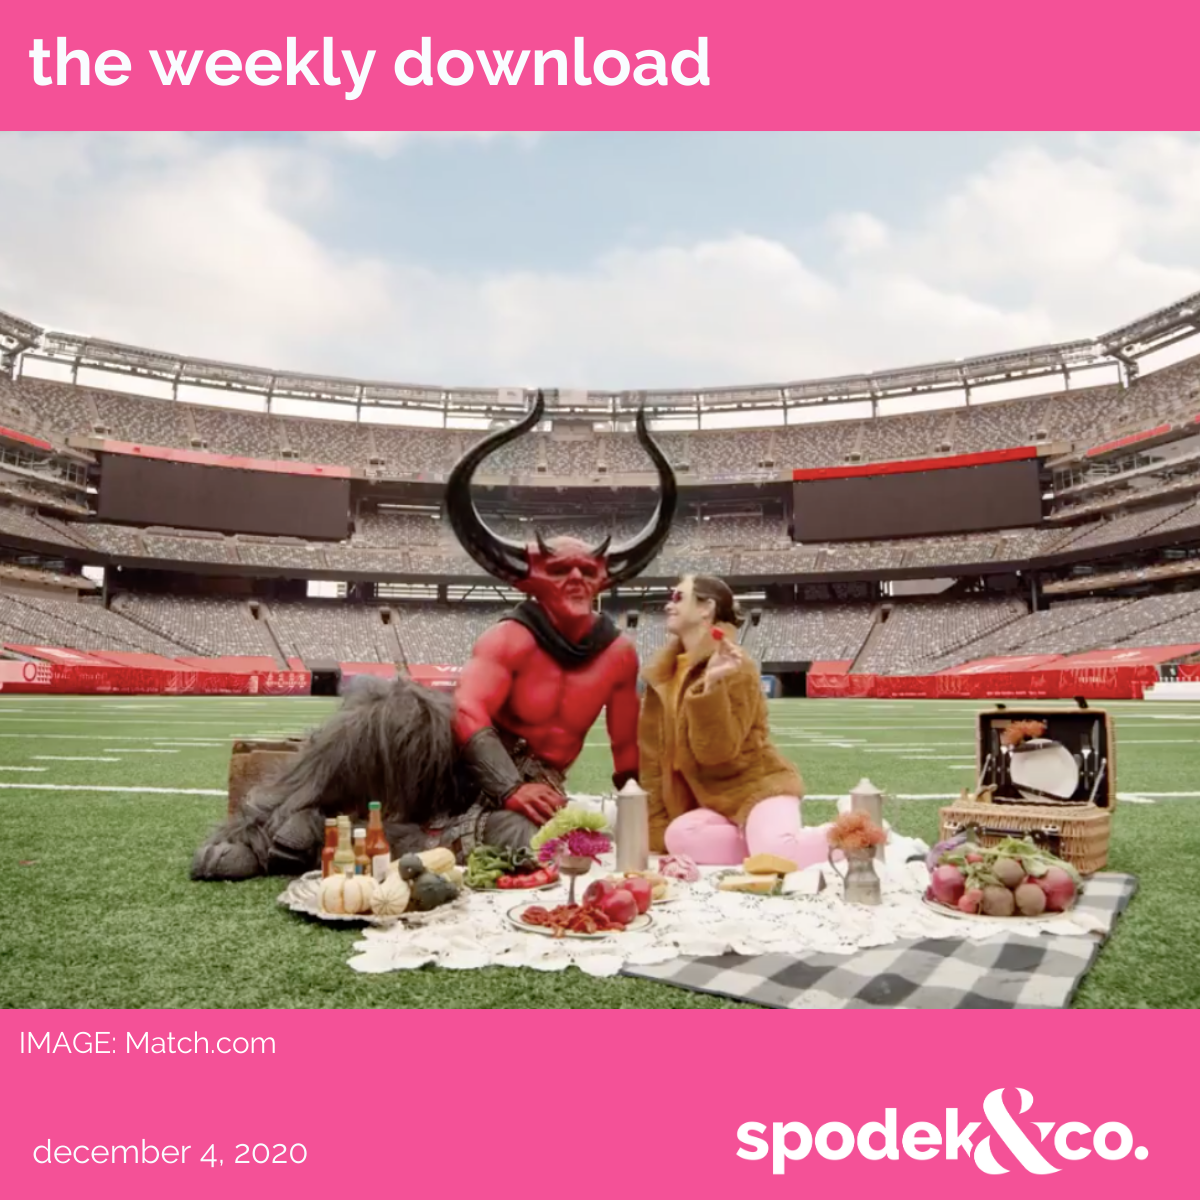 The Weekly Download – December 4, 2020